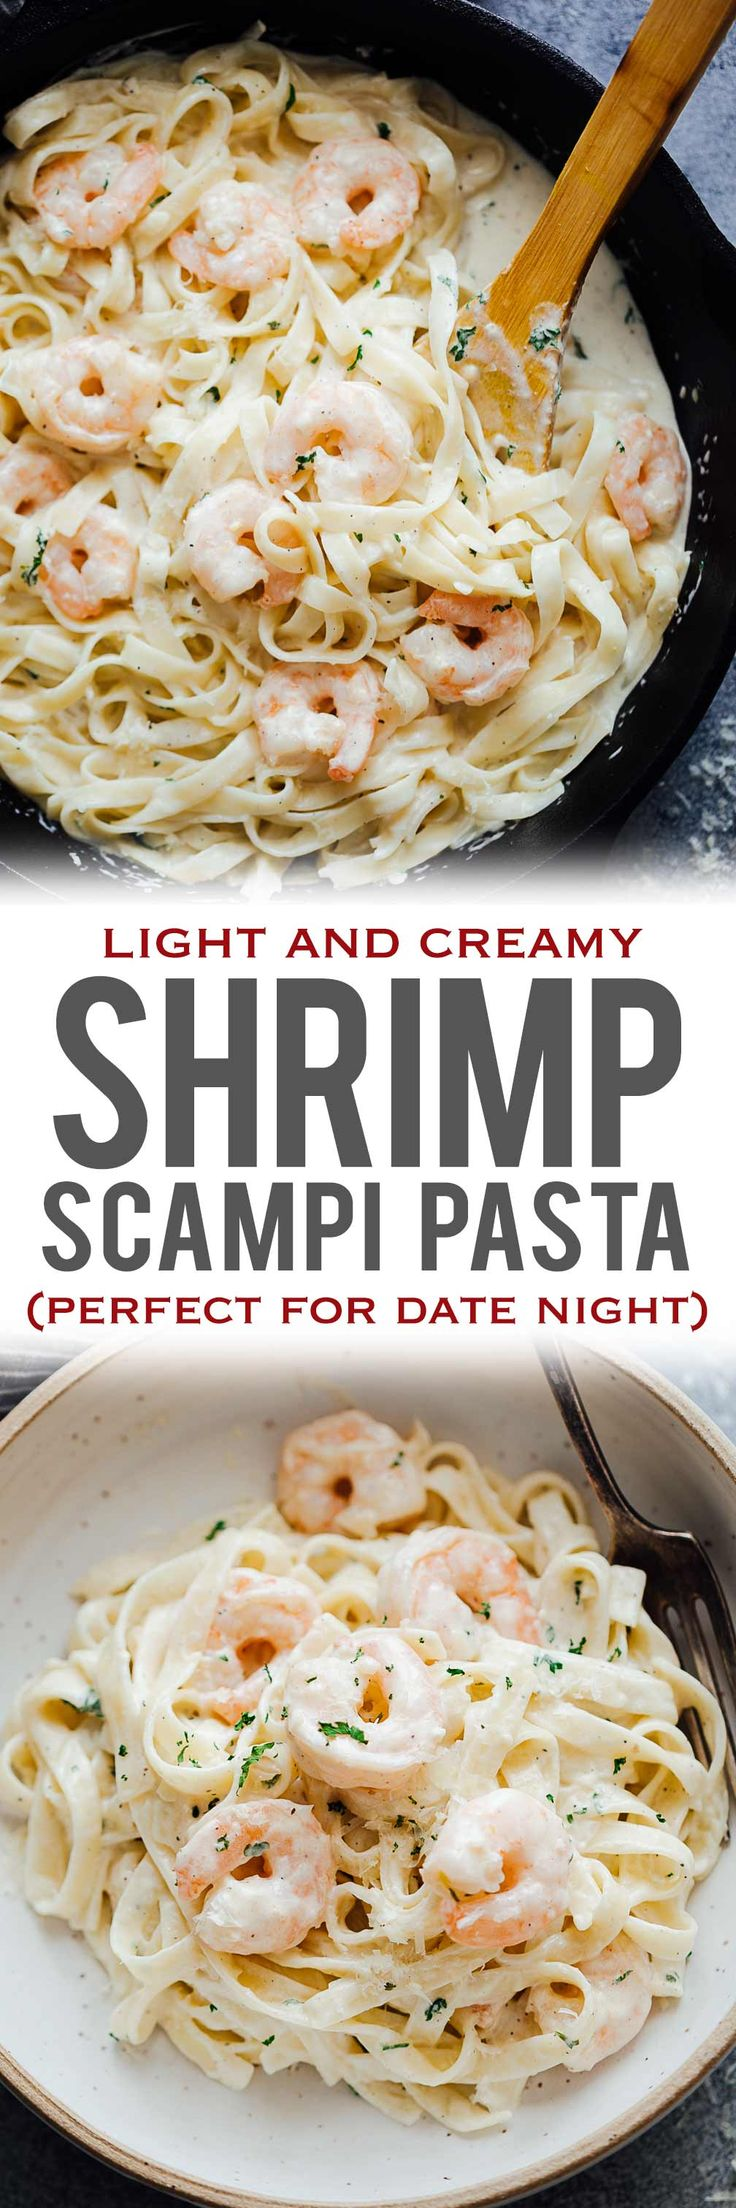 Creamy shrimp scampi pasta is a quick pasta recipe where prawn or shrimp is tossed in a garlic, butter and white wine sauce. Simple, yet indulgent, this recipe is perfect for date night or when you want fast, easy dinners. via @my_foodstory